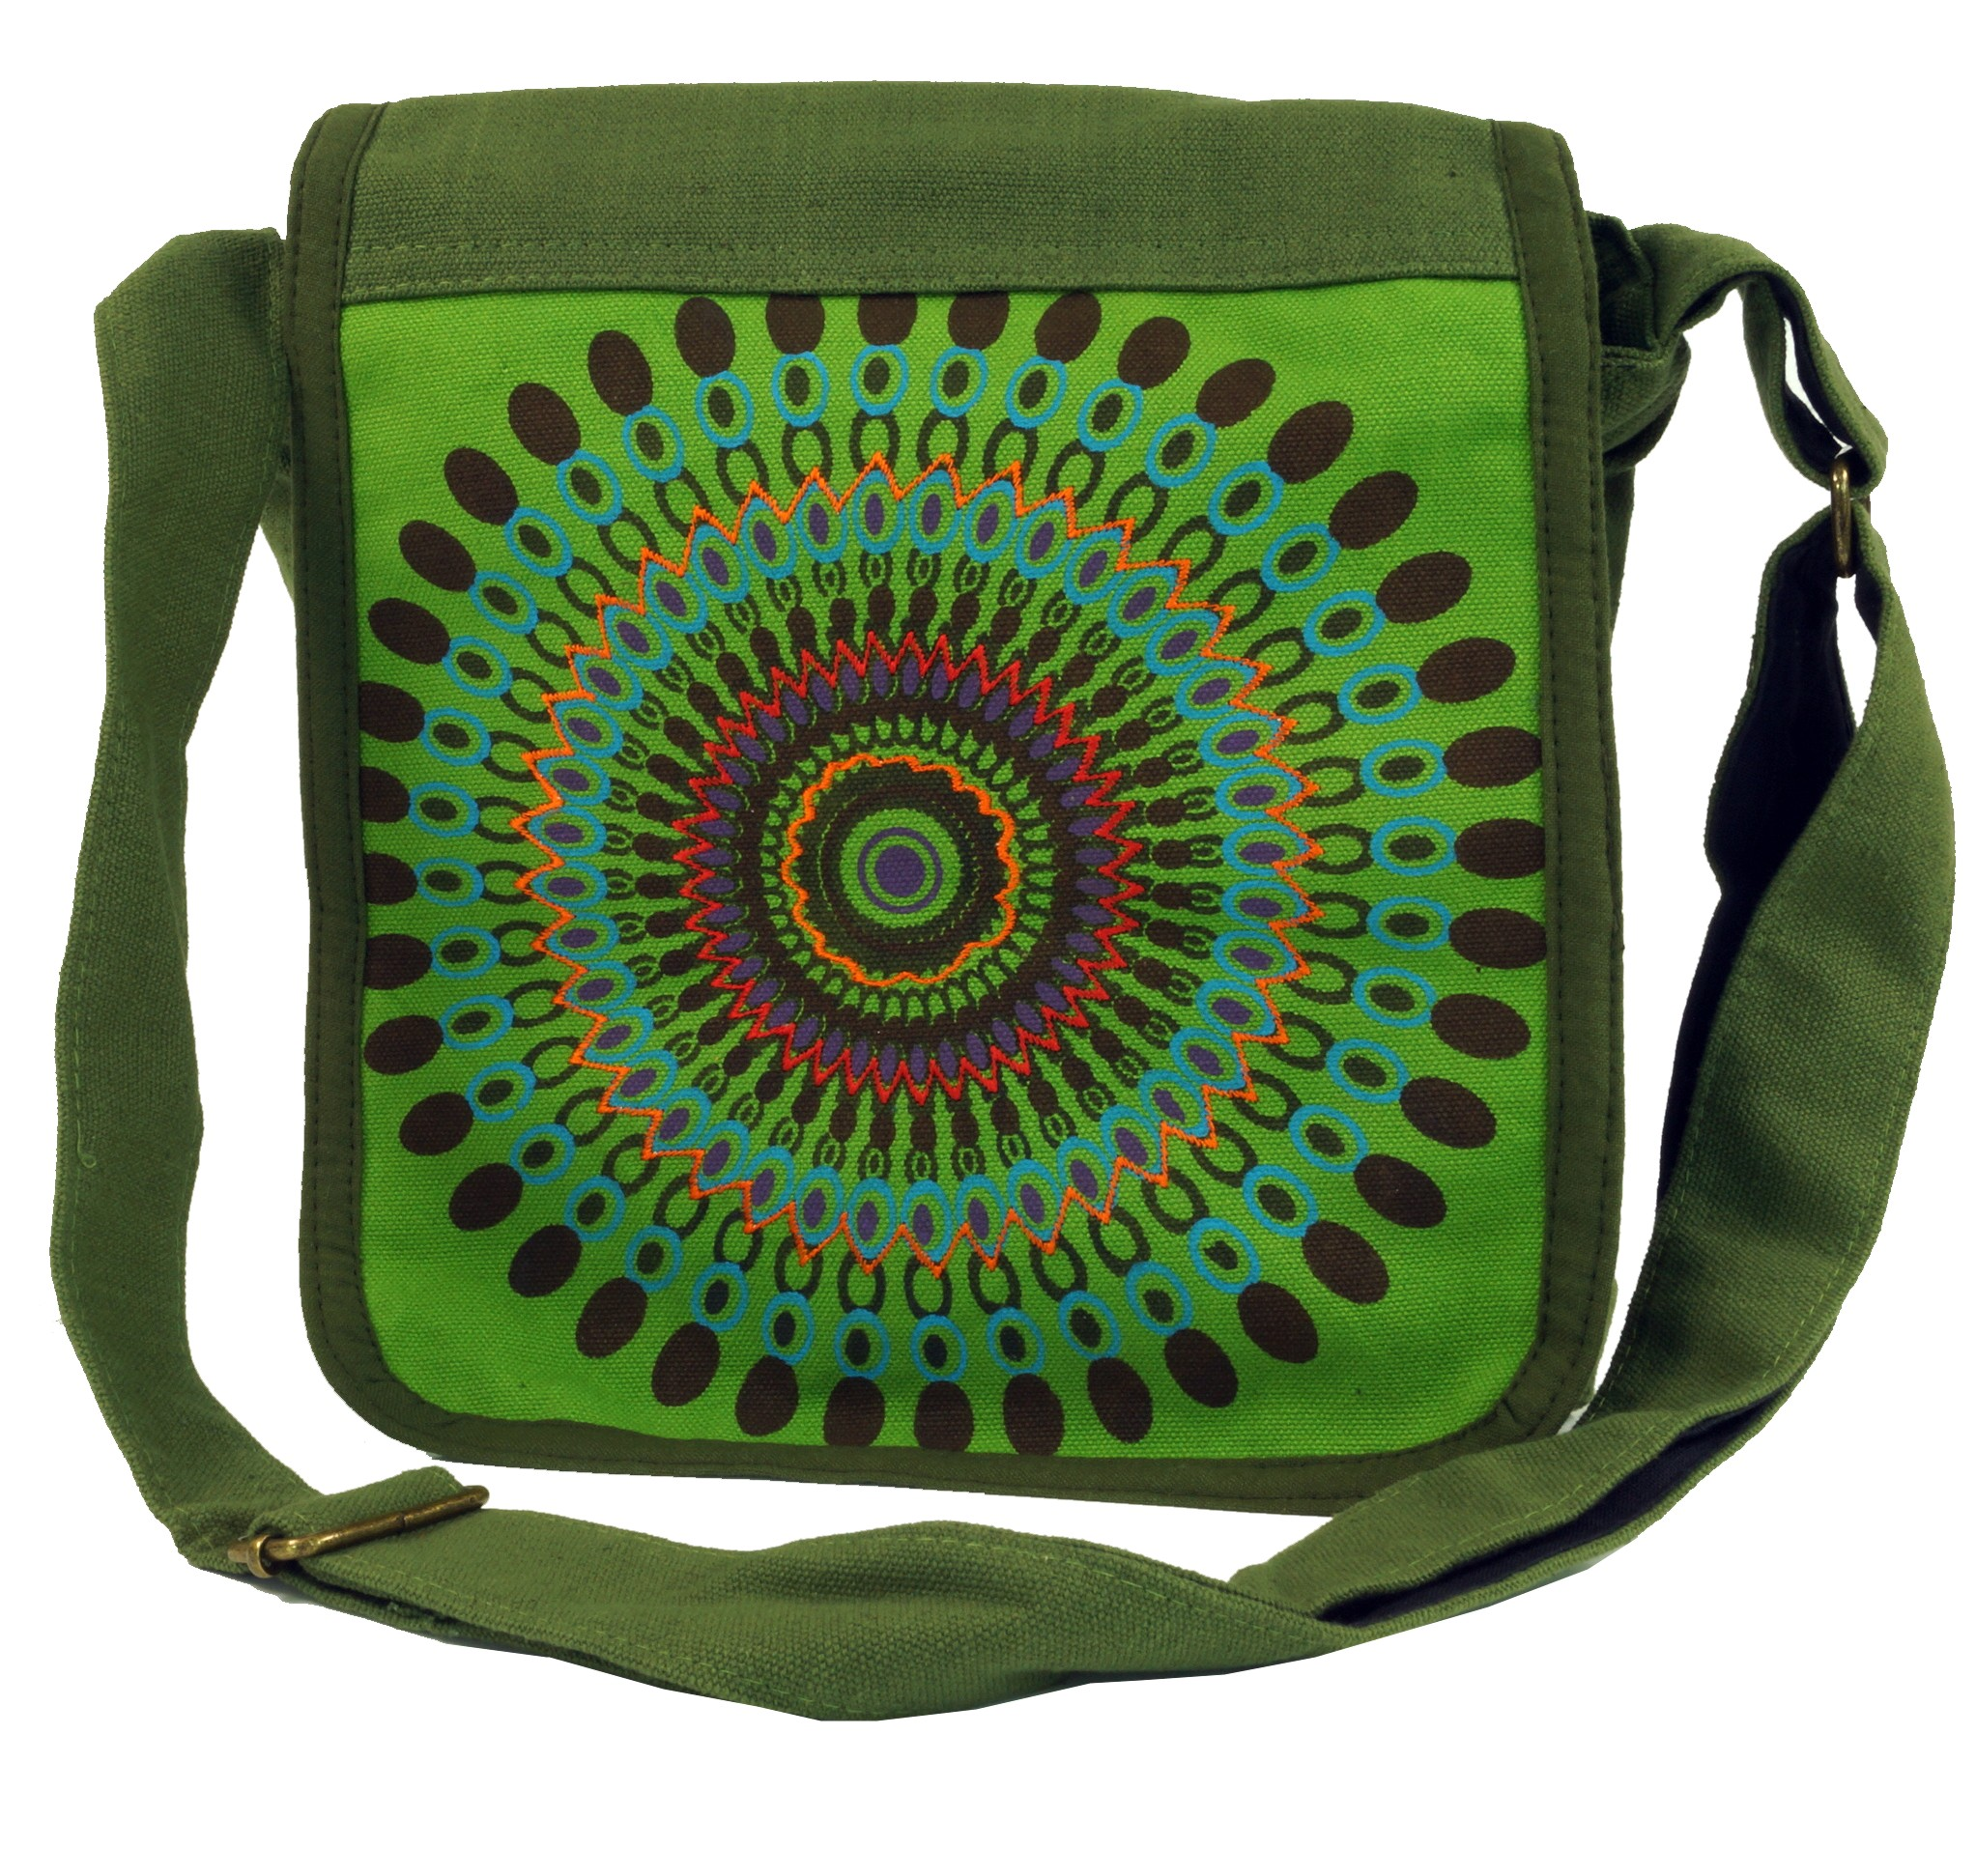 Shoulder bag, Hippie bag, Goa bag green 25x25x7 cm